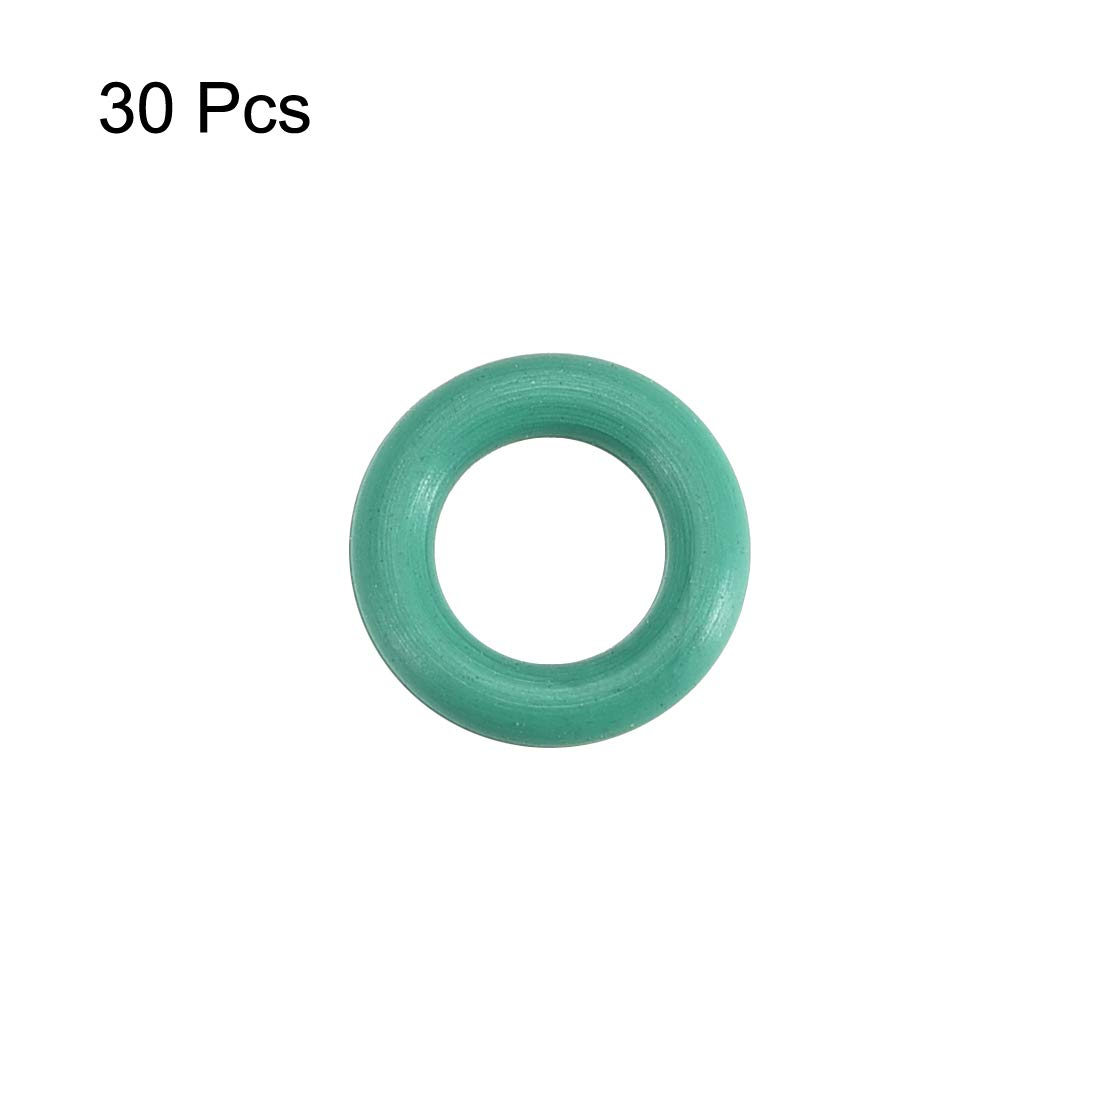 Pack of 30 Green 7mm OD 4mm ID 1.5mm Width FKM Seal Gasket for Vehicle Machinery Plumbing sourcingmap Fluorine Rubber O-Rings